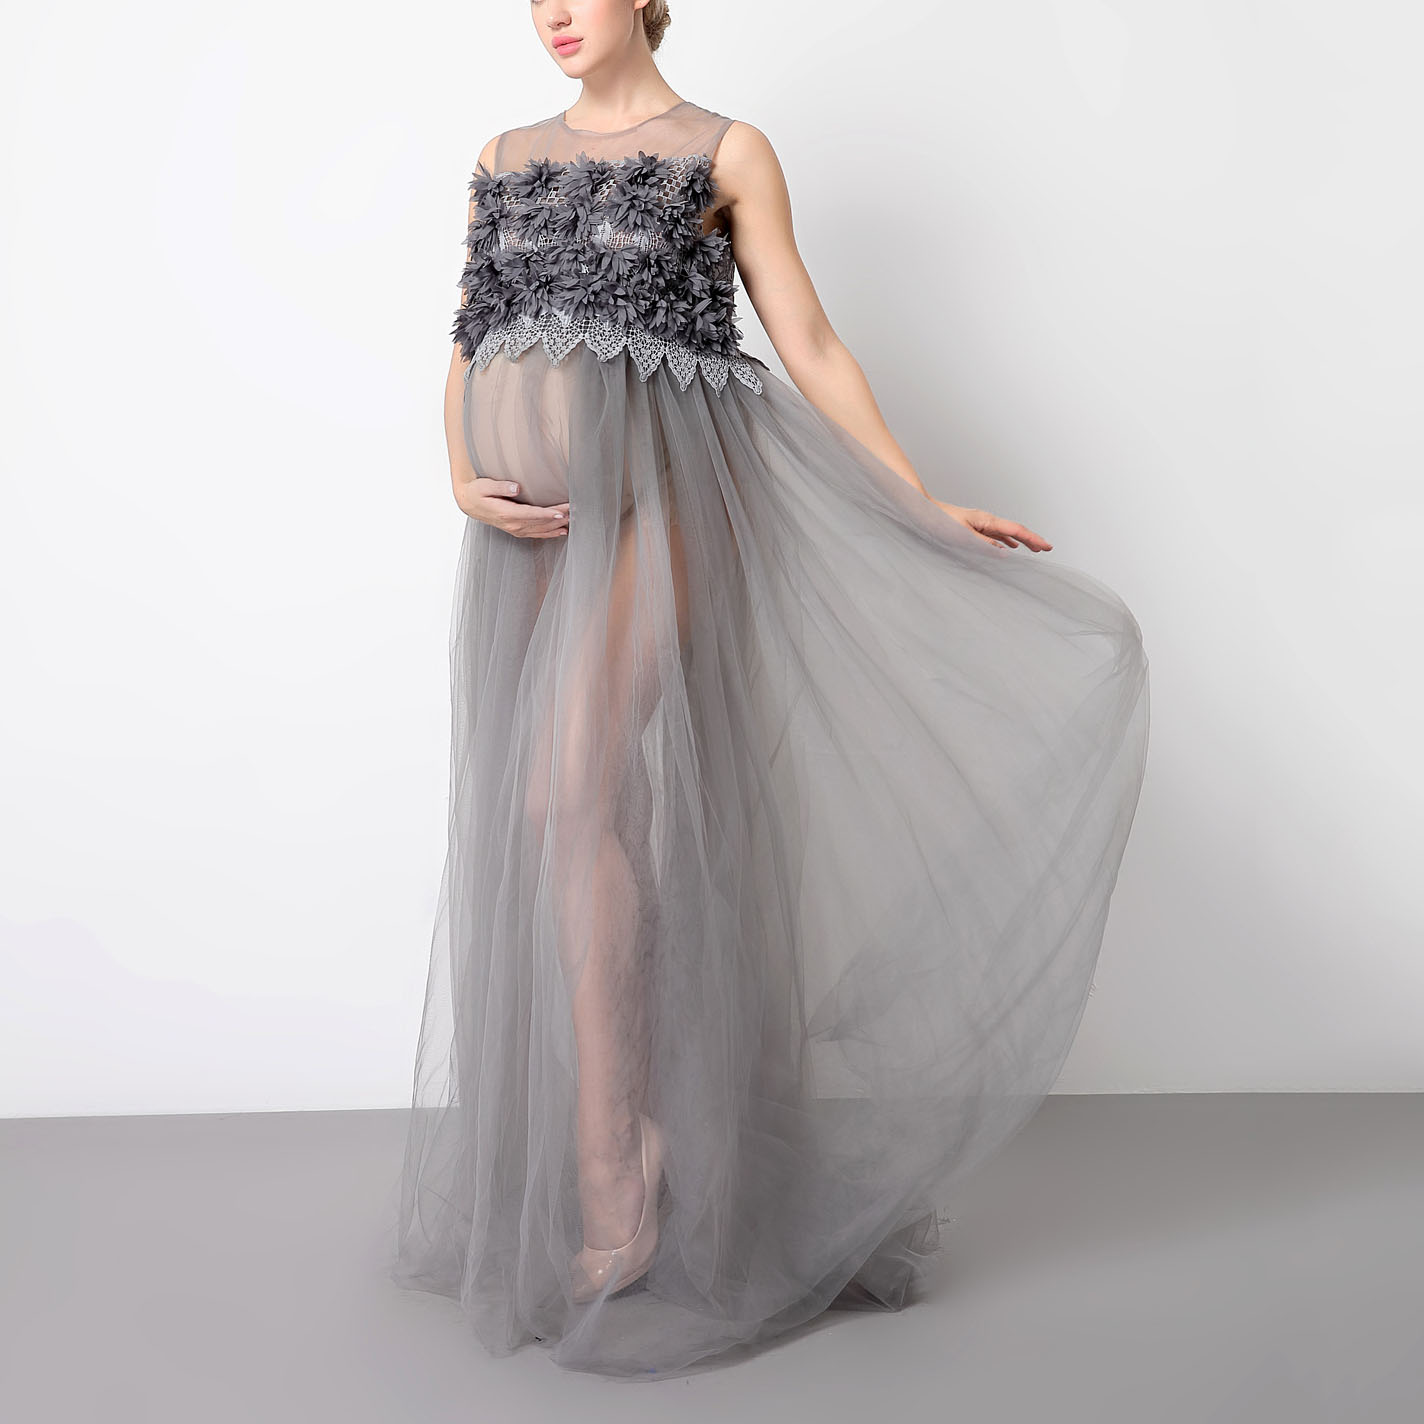 Maternity Graceful Solid Gray Sleeveless Lace Maxi Dress